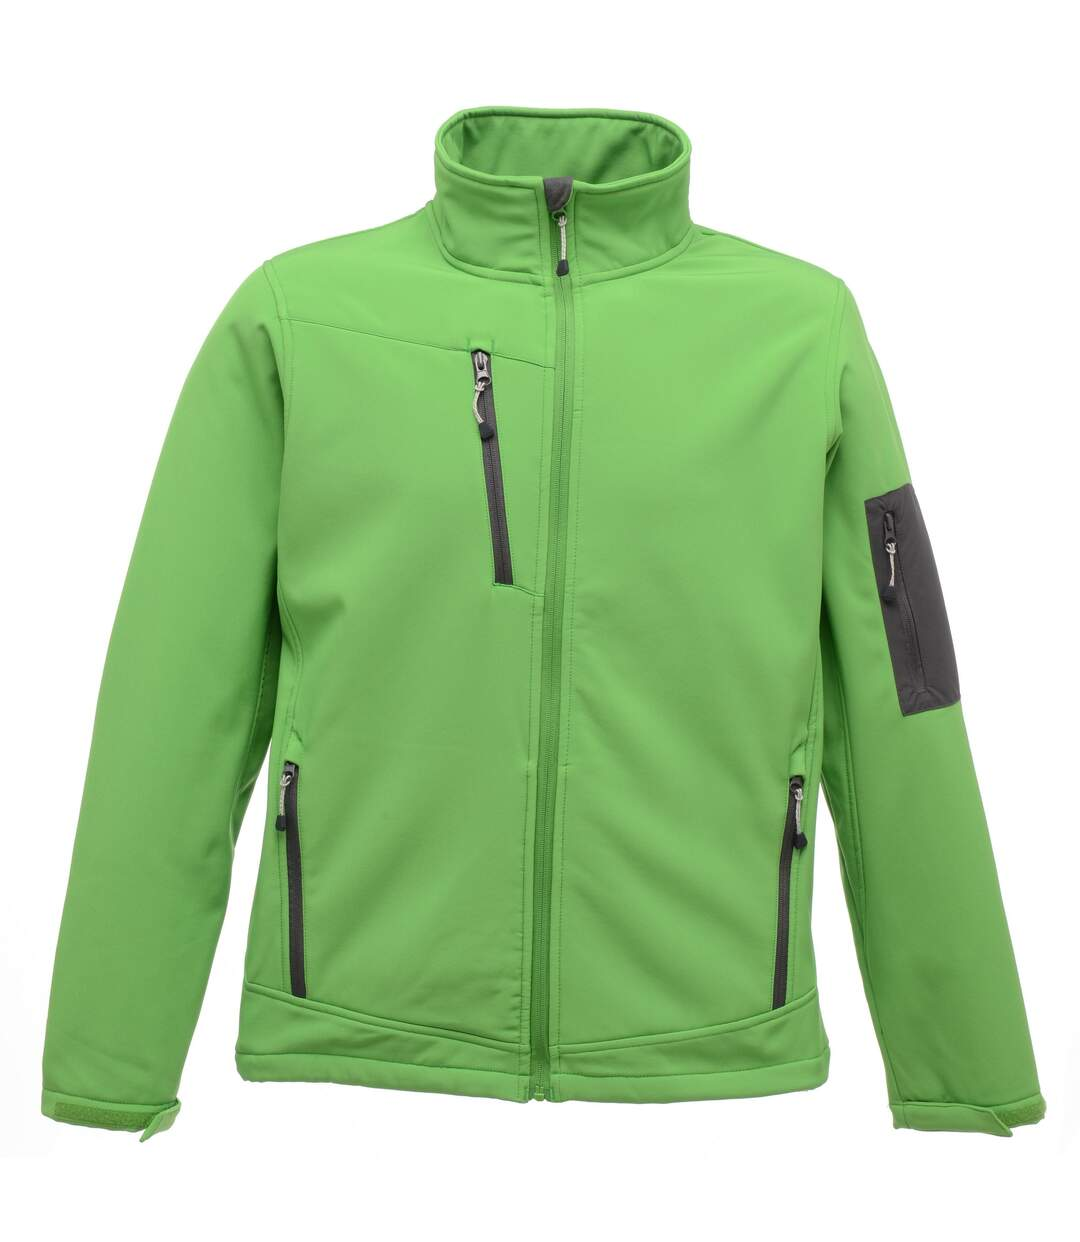 Regatta Standout Mens Arcola 3 Layer Waterproof And Breathable Softshell Jacket (Extreme Green/Seal Grey) - UTRG1461